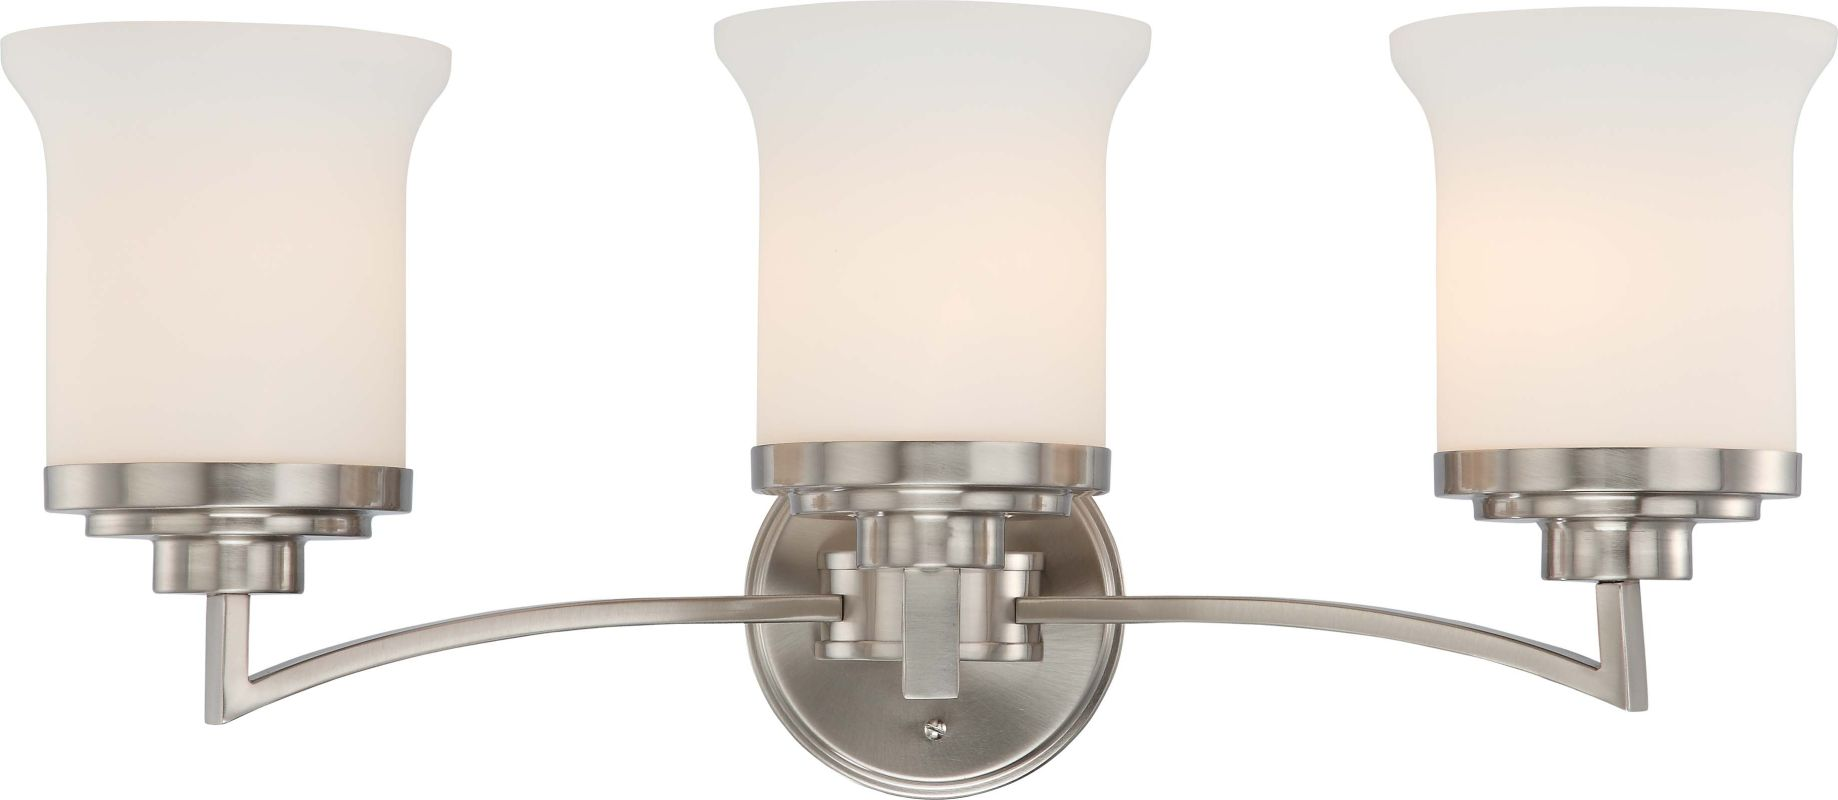 Mount Vanity Light Up Or Down : Nuvo Lighting 60/4103 Brushed Nickel Harmony Three Light Bathroom Fixture with Satin White Glass ...